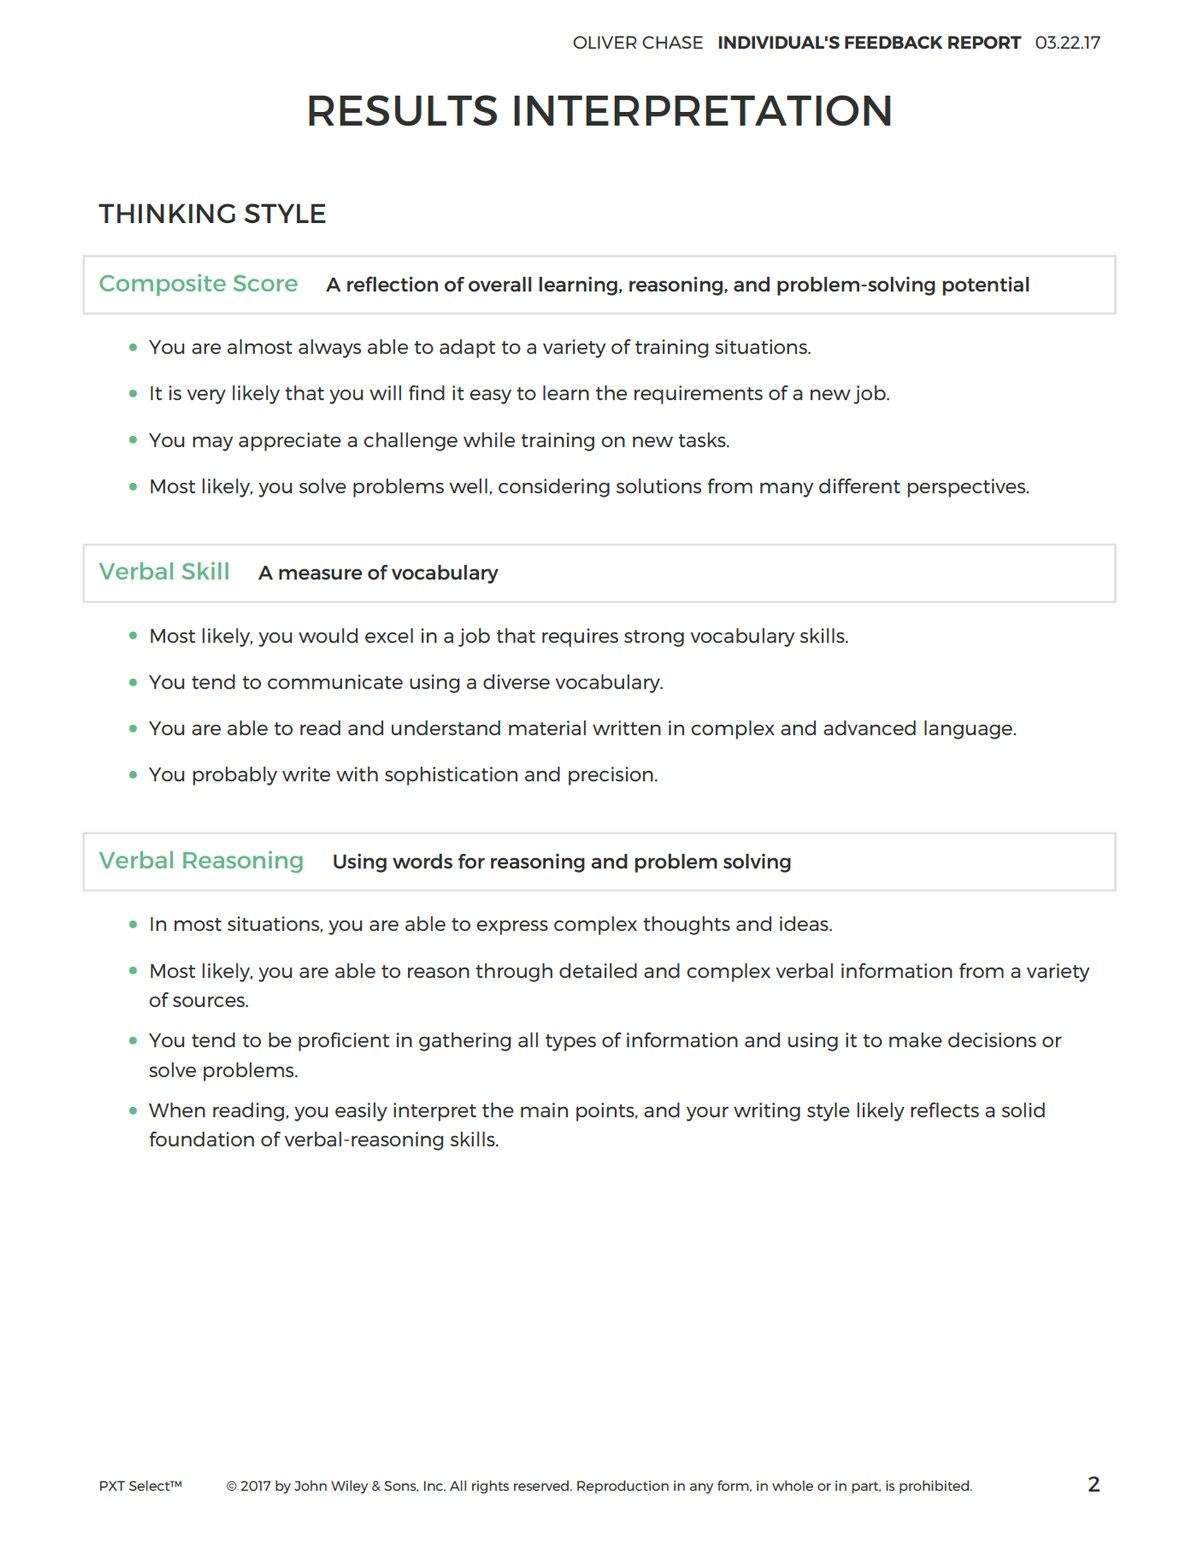 Individual's Feedback Report